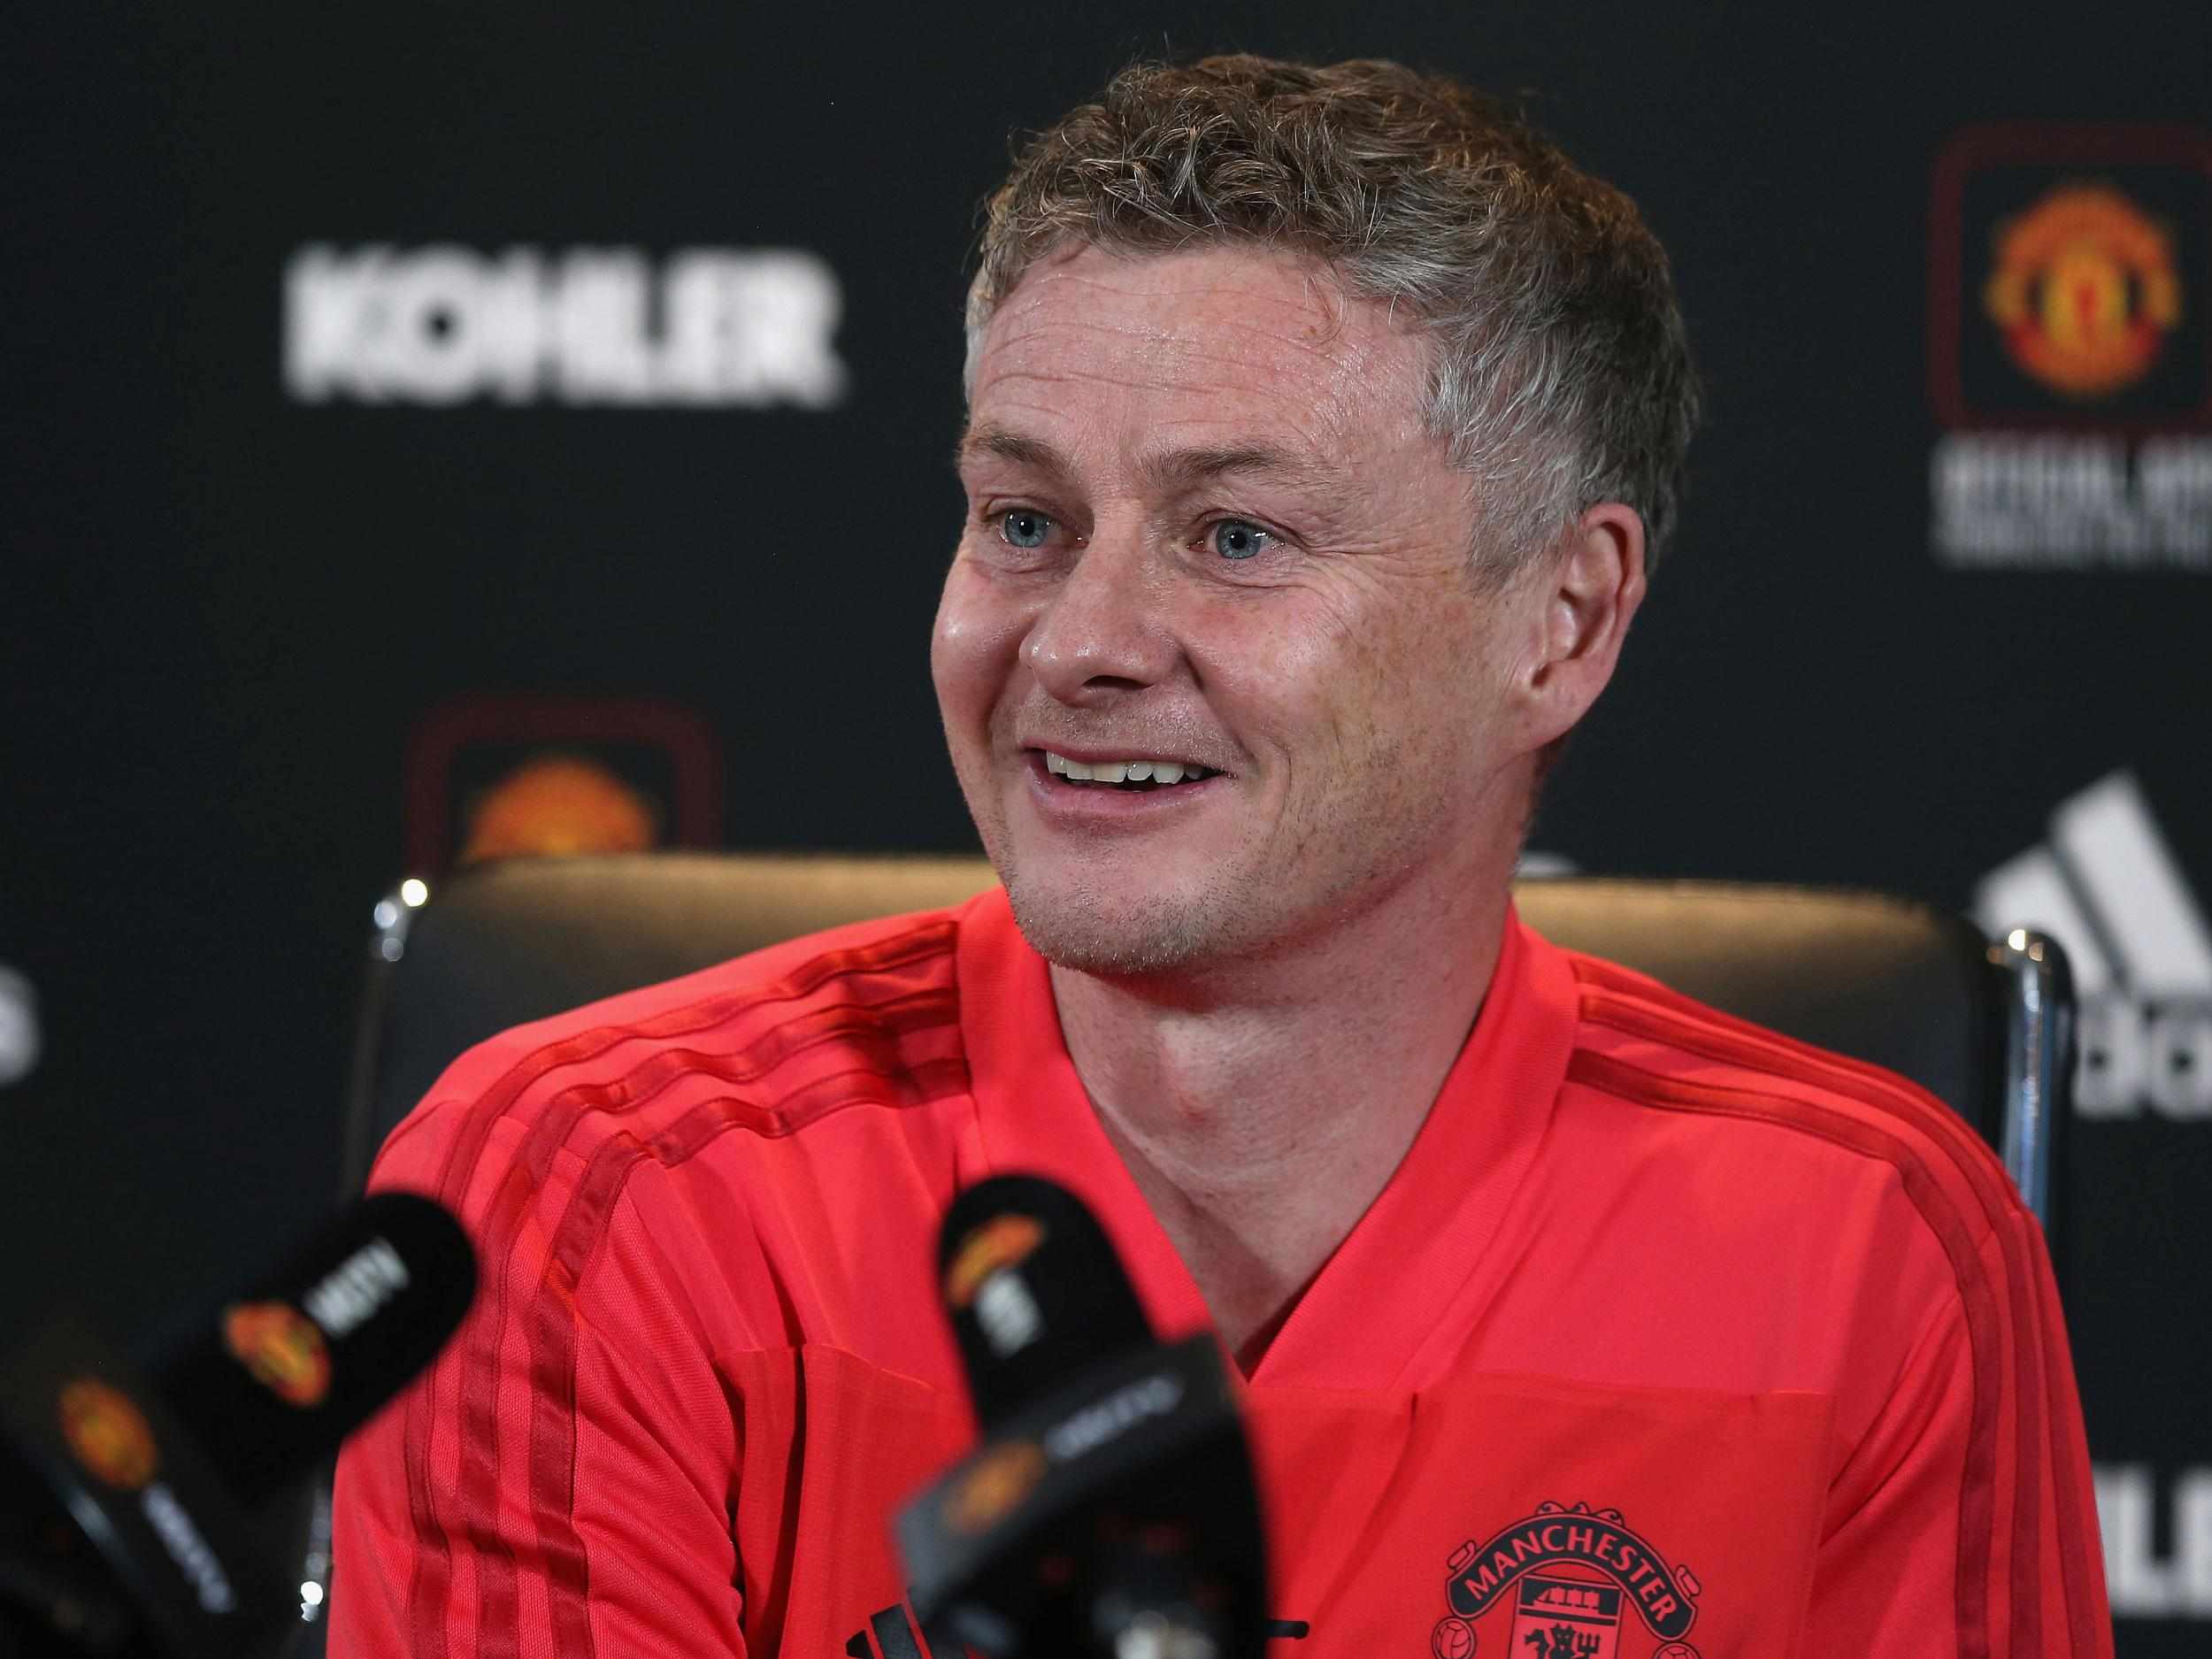 Manchester United: Ole Gunnar Solskjaer warns players to be wary of Manchester City fouling